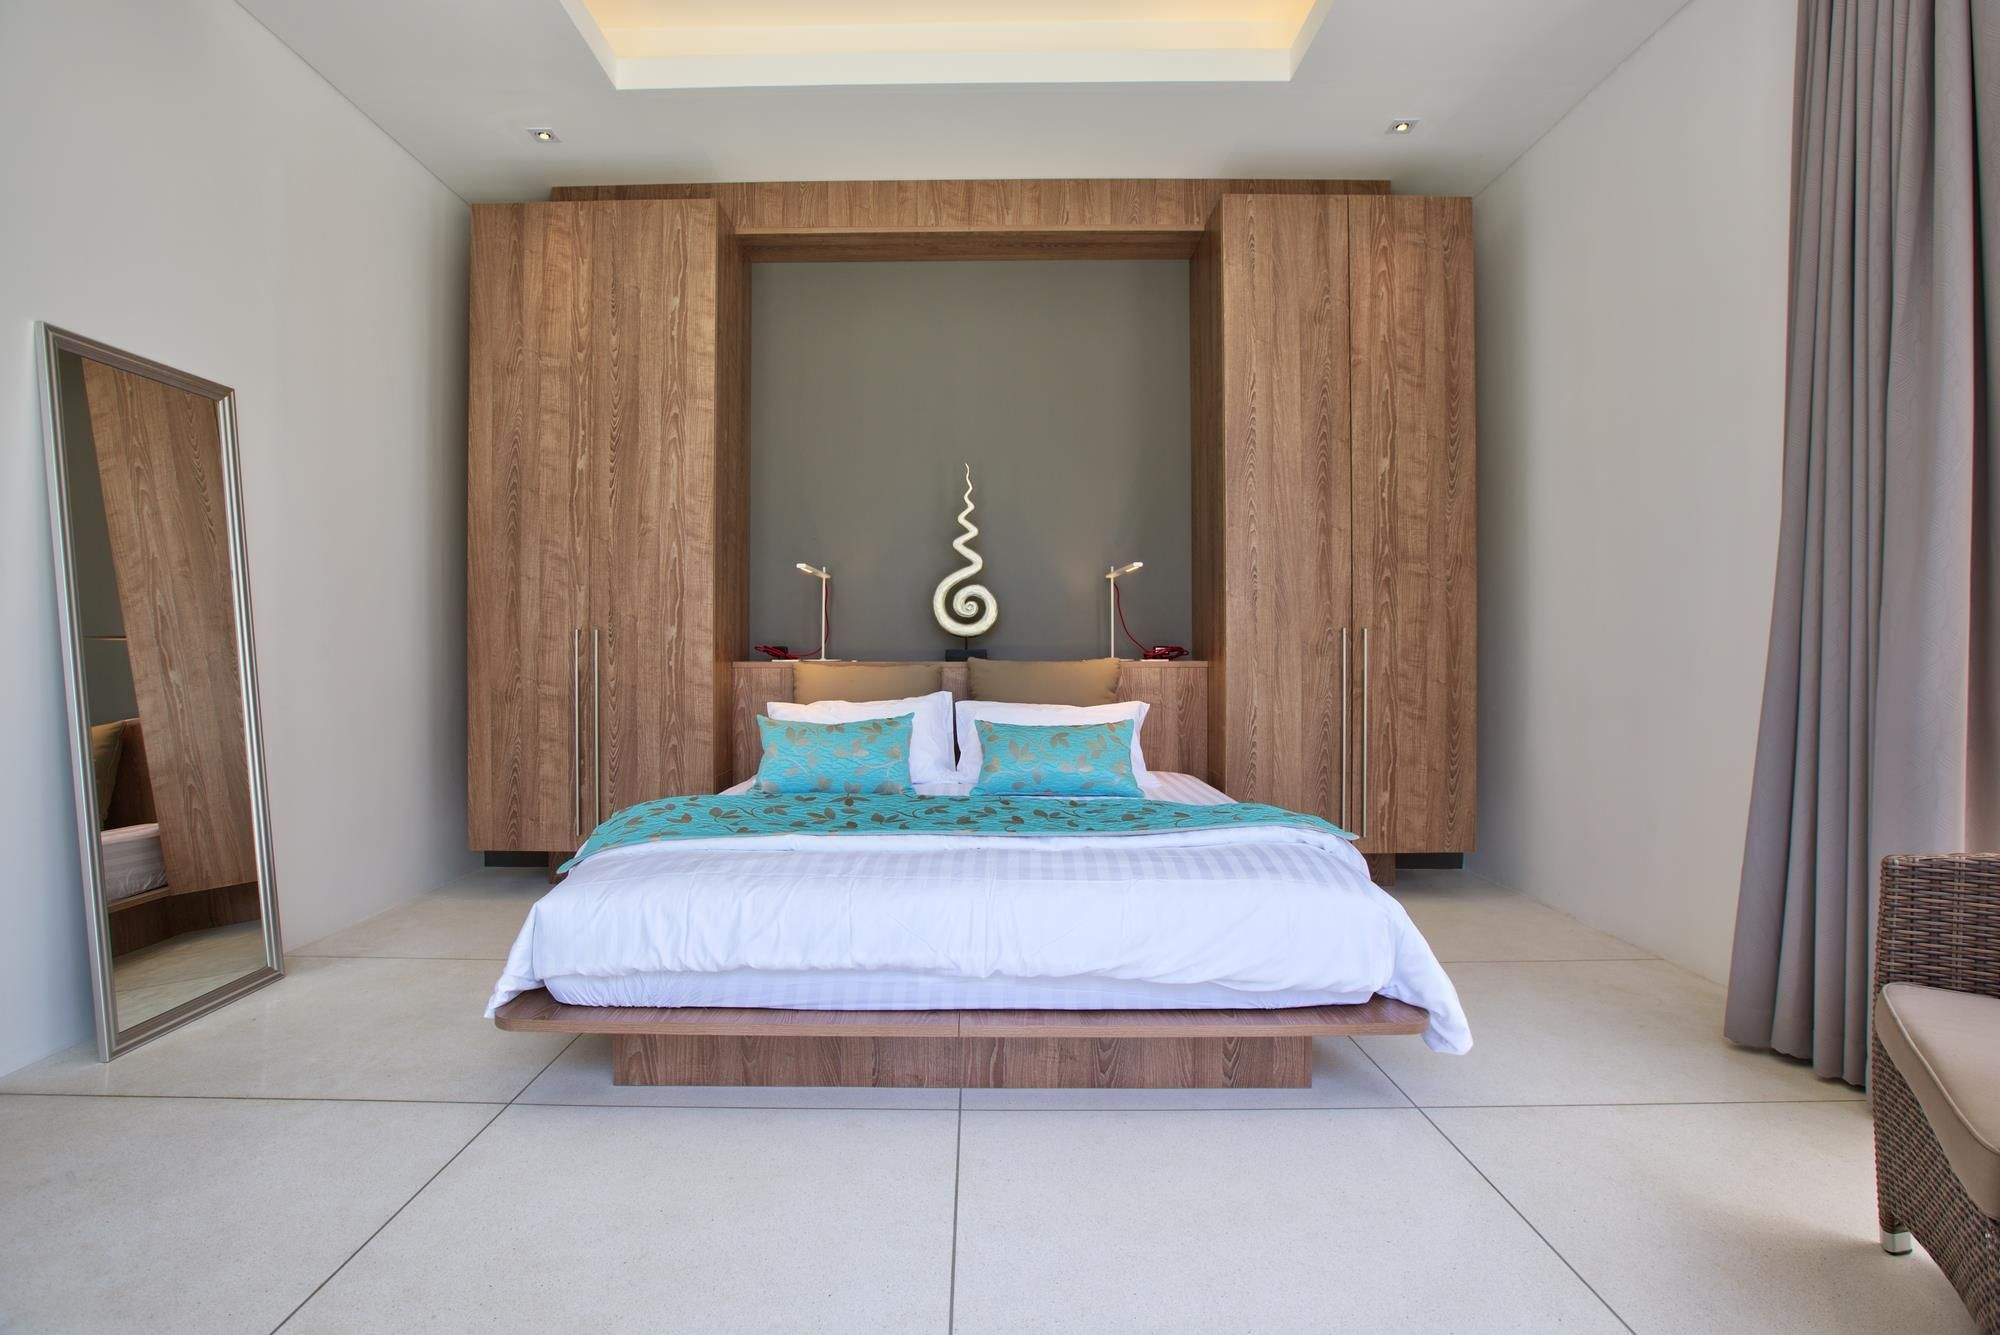 Bedroom Design Websites Villa Soong Samui Thailand  Asia  Pinterest  Samui Thailand